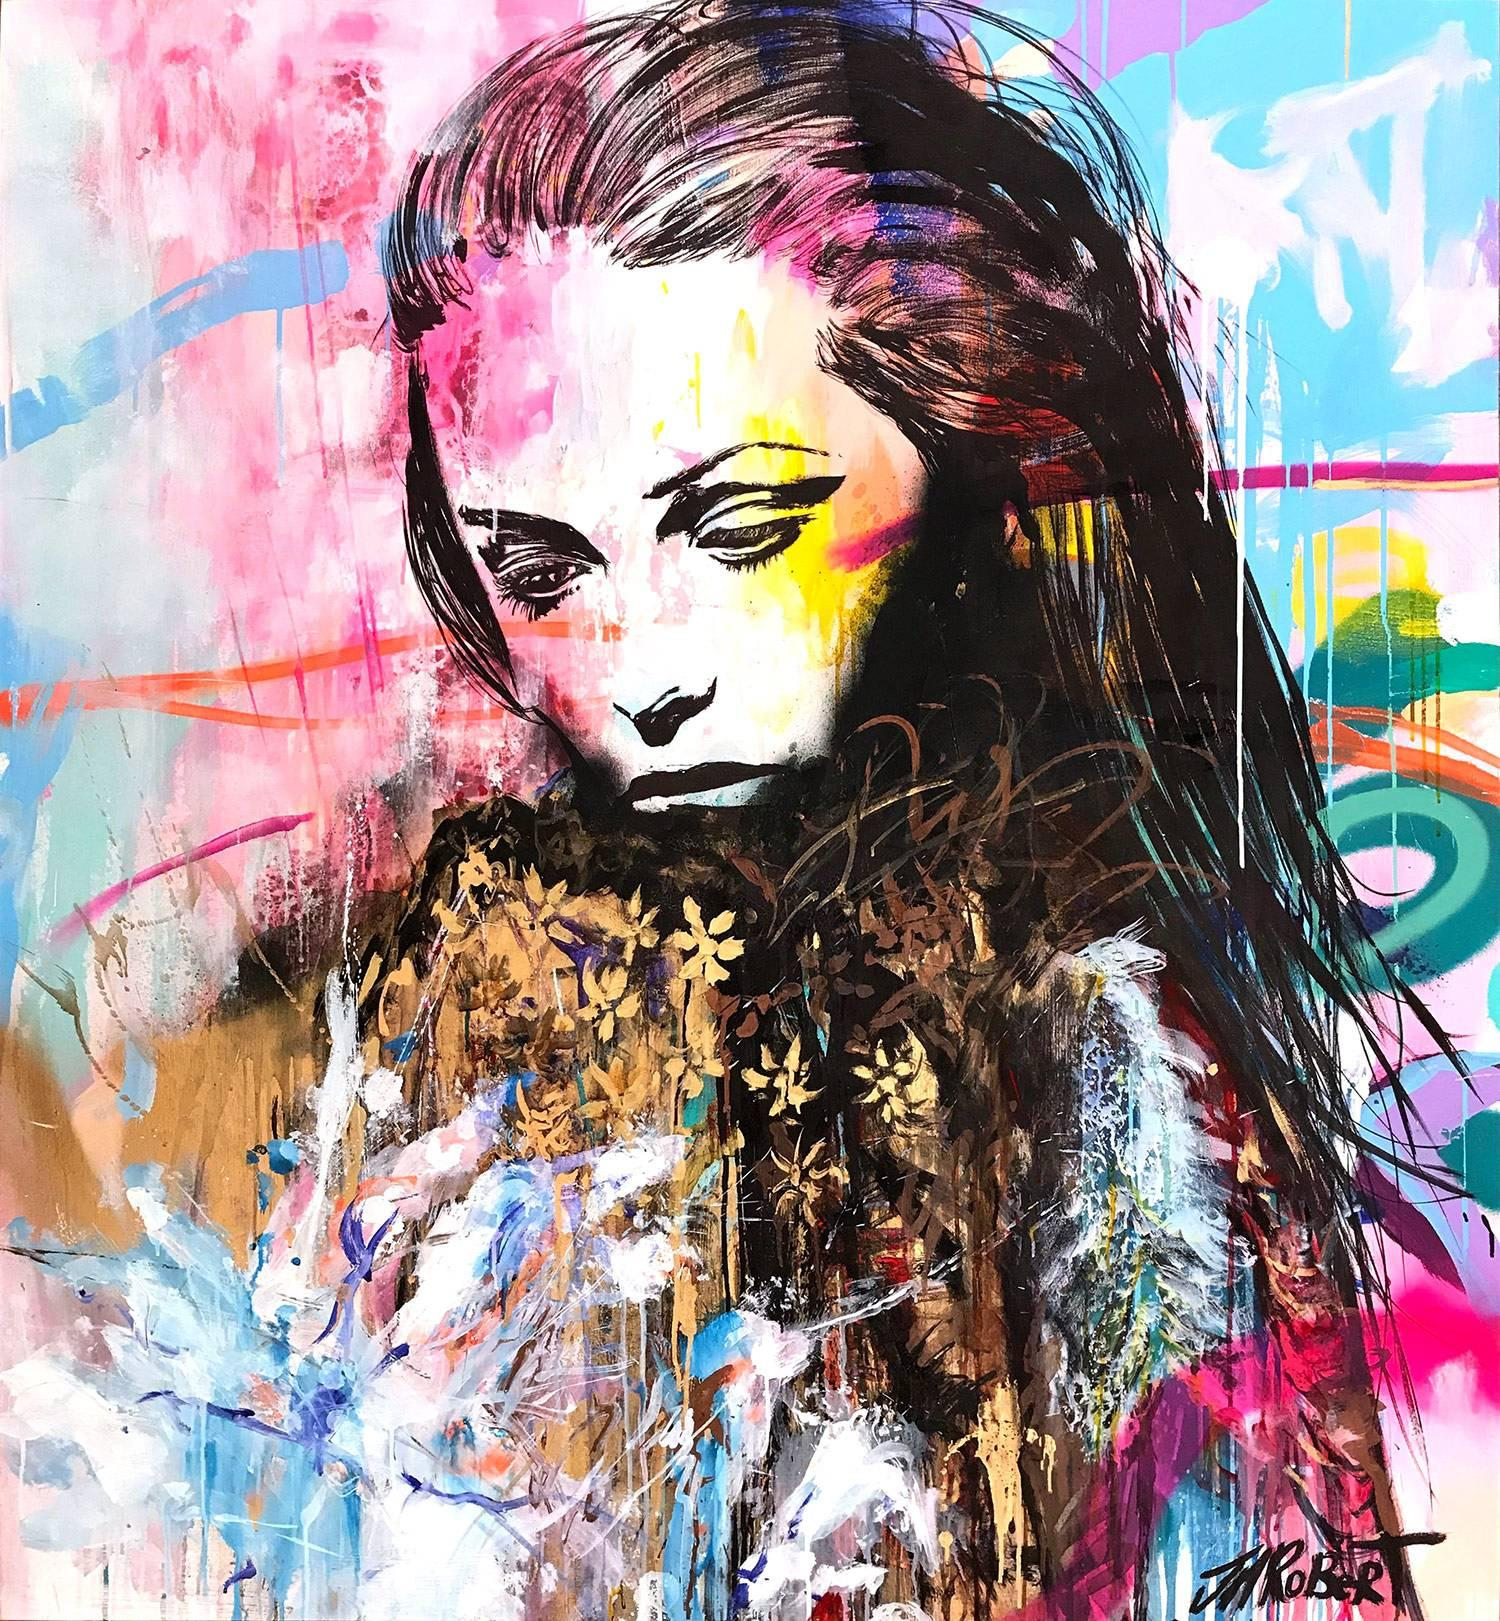 Colorful Abstract Woman Art